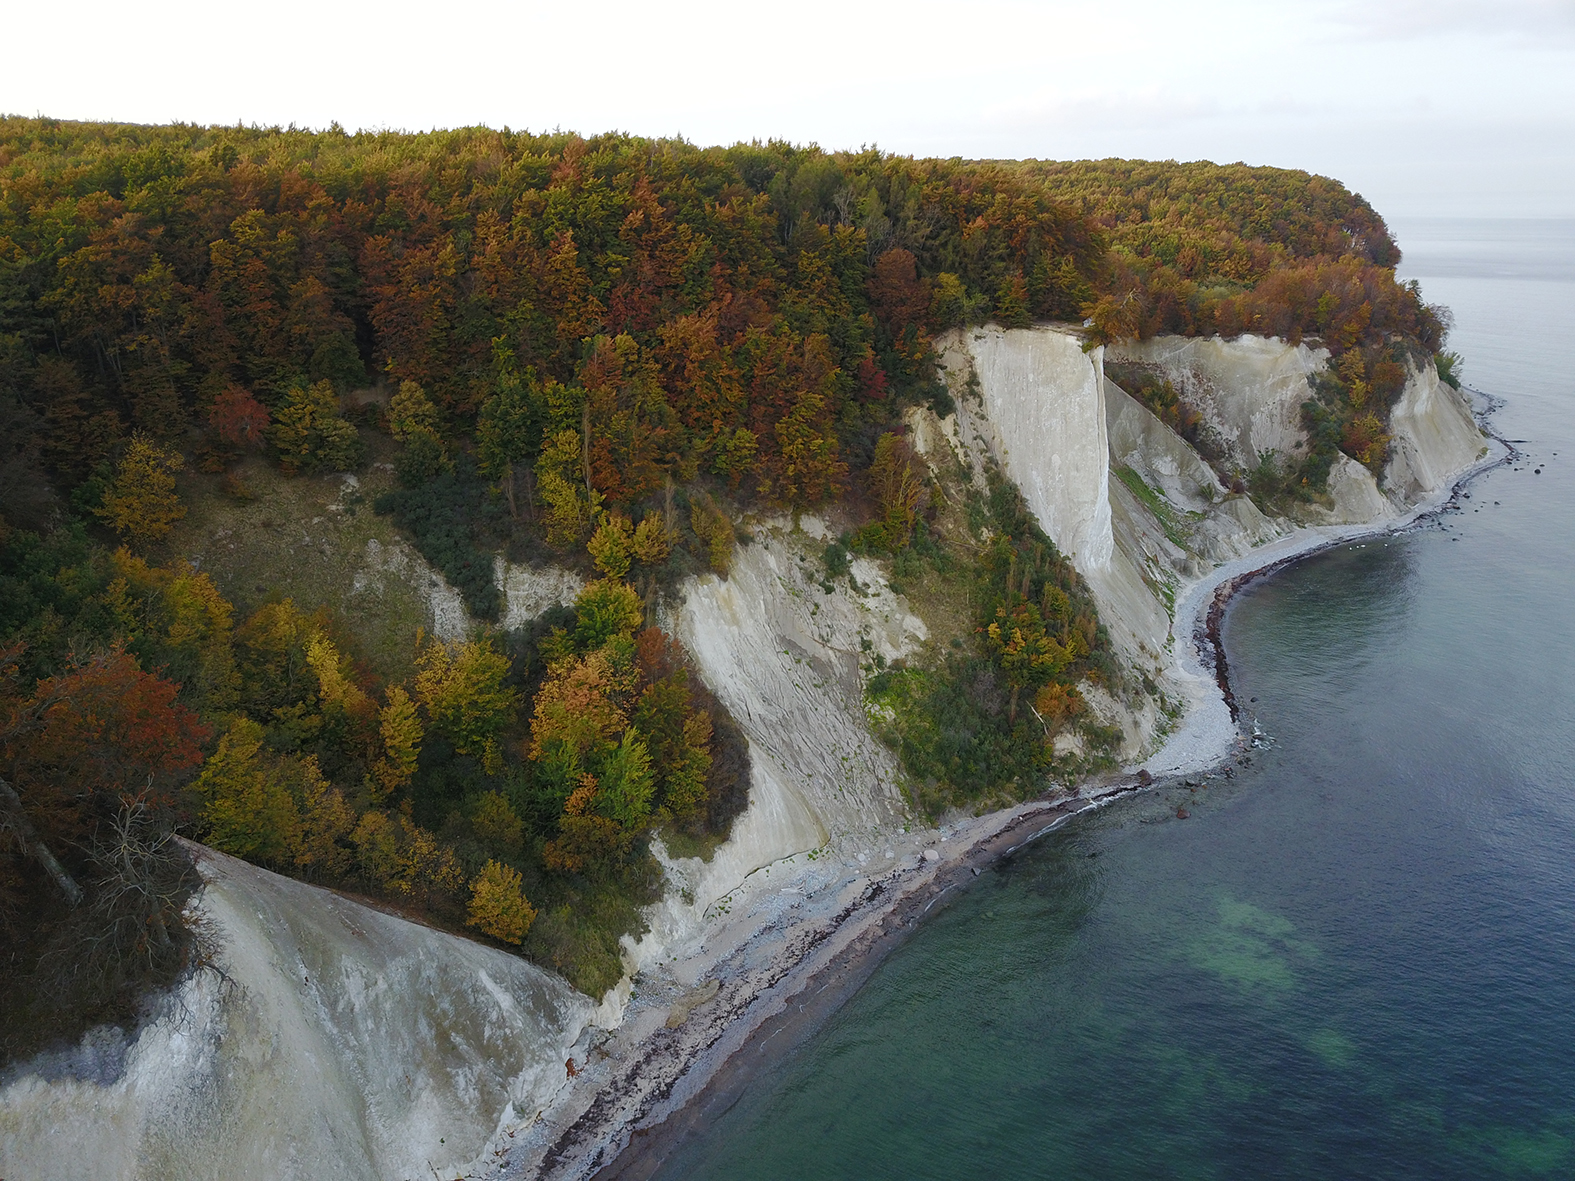 Failures of Germany's Largest Cliff Coast Sensed by Seismometers